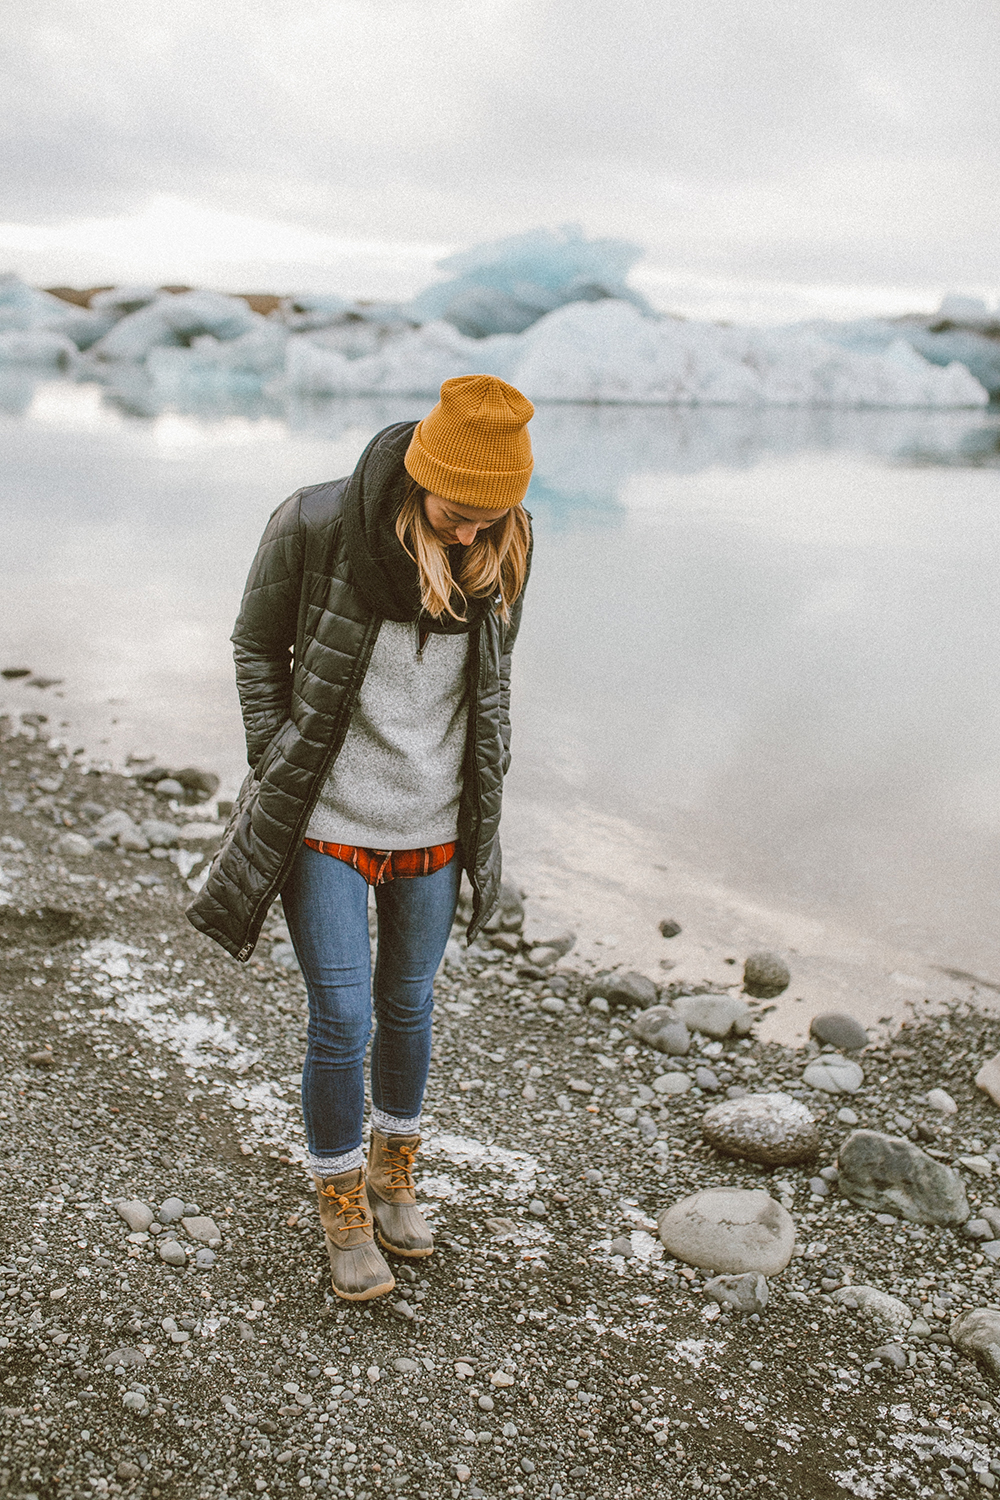 livvyland-blog-olivia-watson-travel-lifestyle-blogger-iceland-road-trip-what-to-do-pack-reykjavik-noken-travel-guide-Jökulsárlón-glacier-lake-2